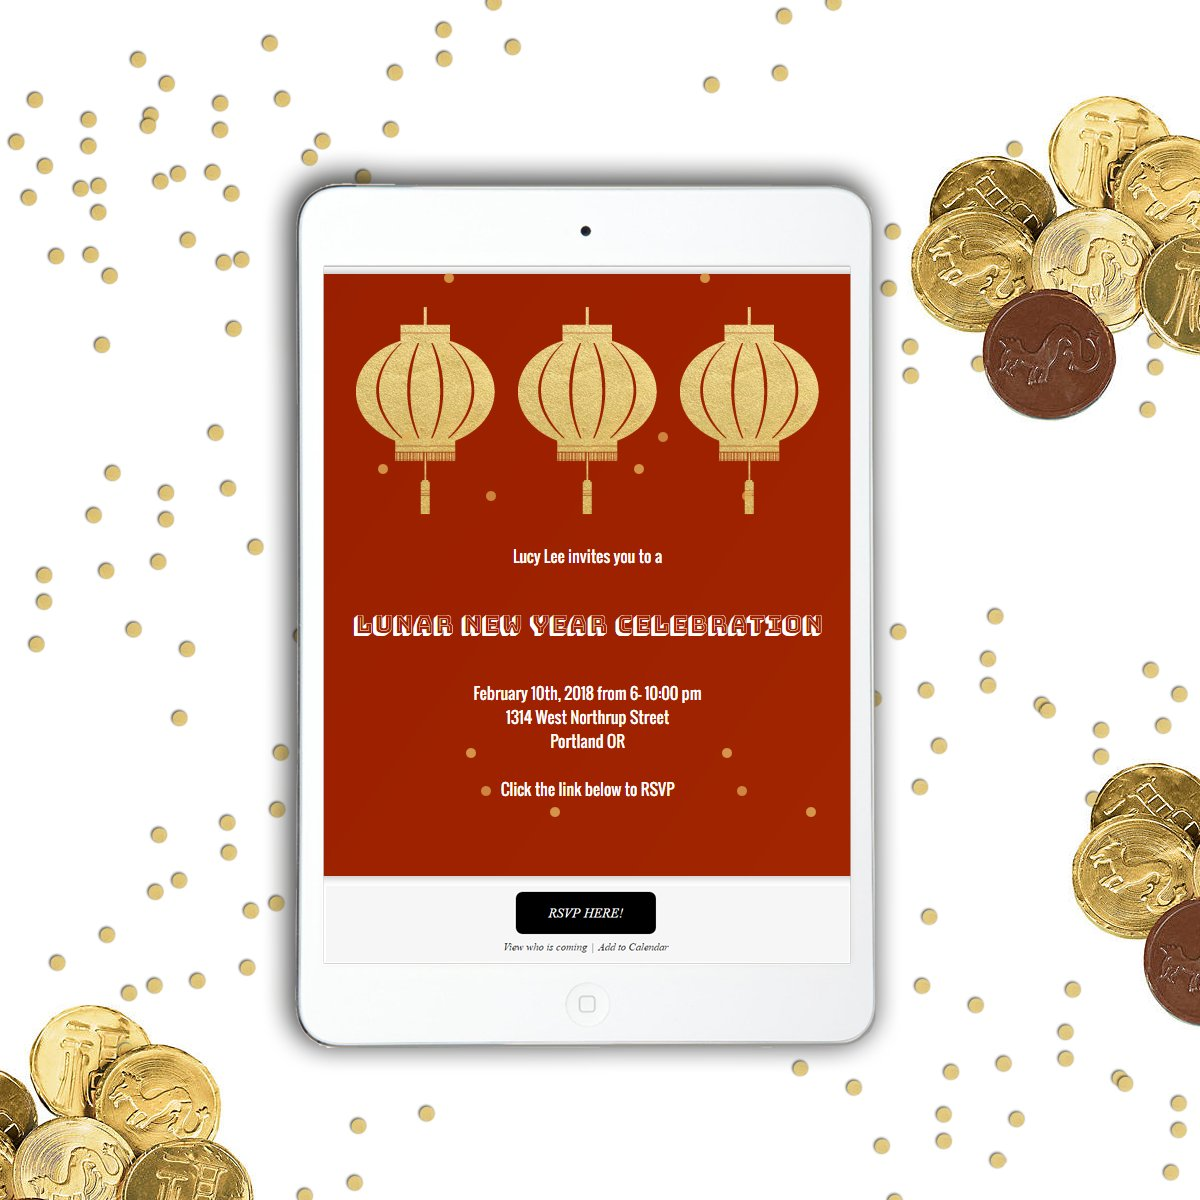 paint the town red with fantastic lunar new year invitations from sendo httpowlykn9k30hoq6k lunarnewyear yearofthedog invitations onlineinvites